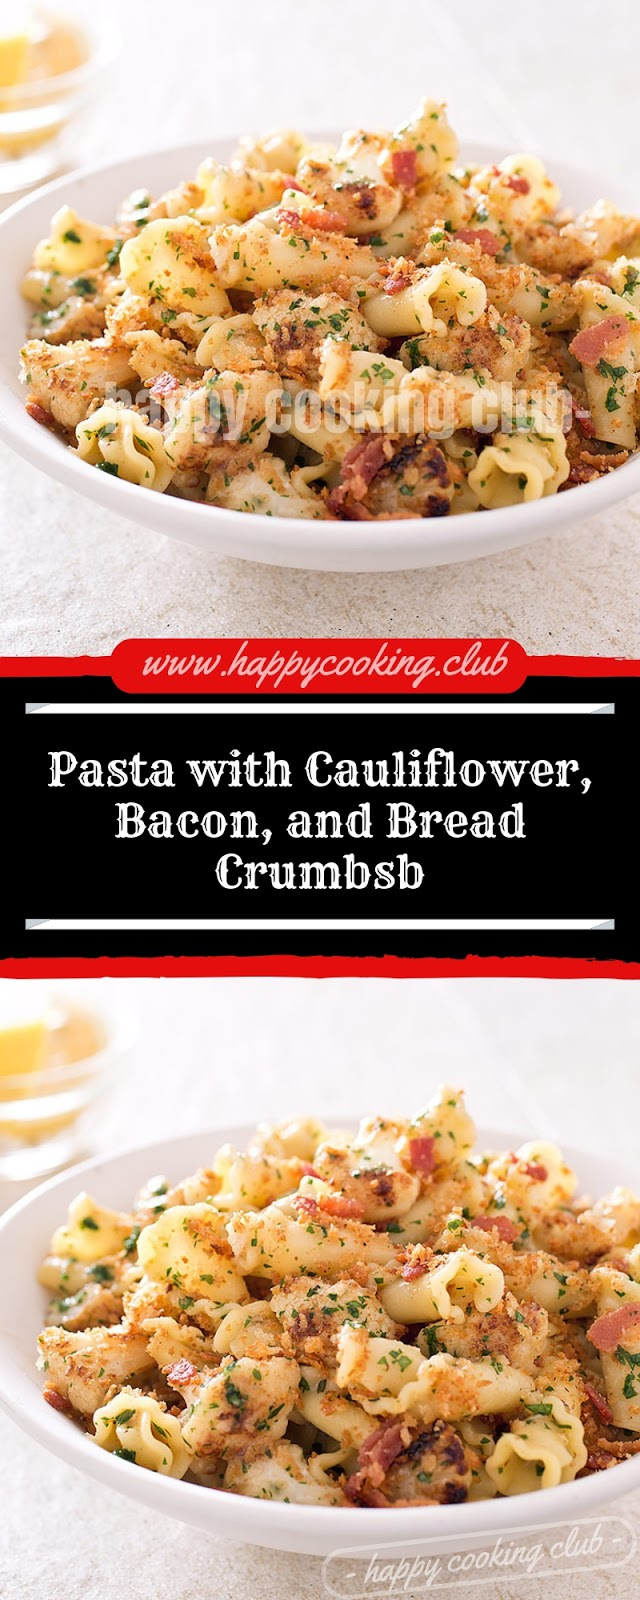 Pasta with Cauliflower, Bacon, and Bread Crumbsb